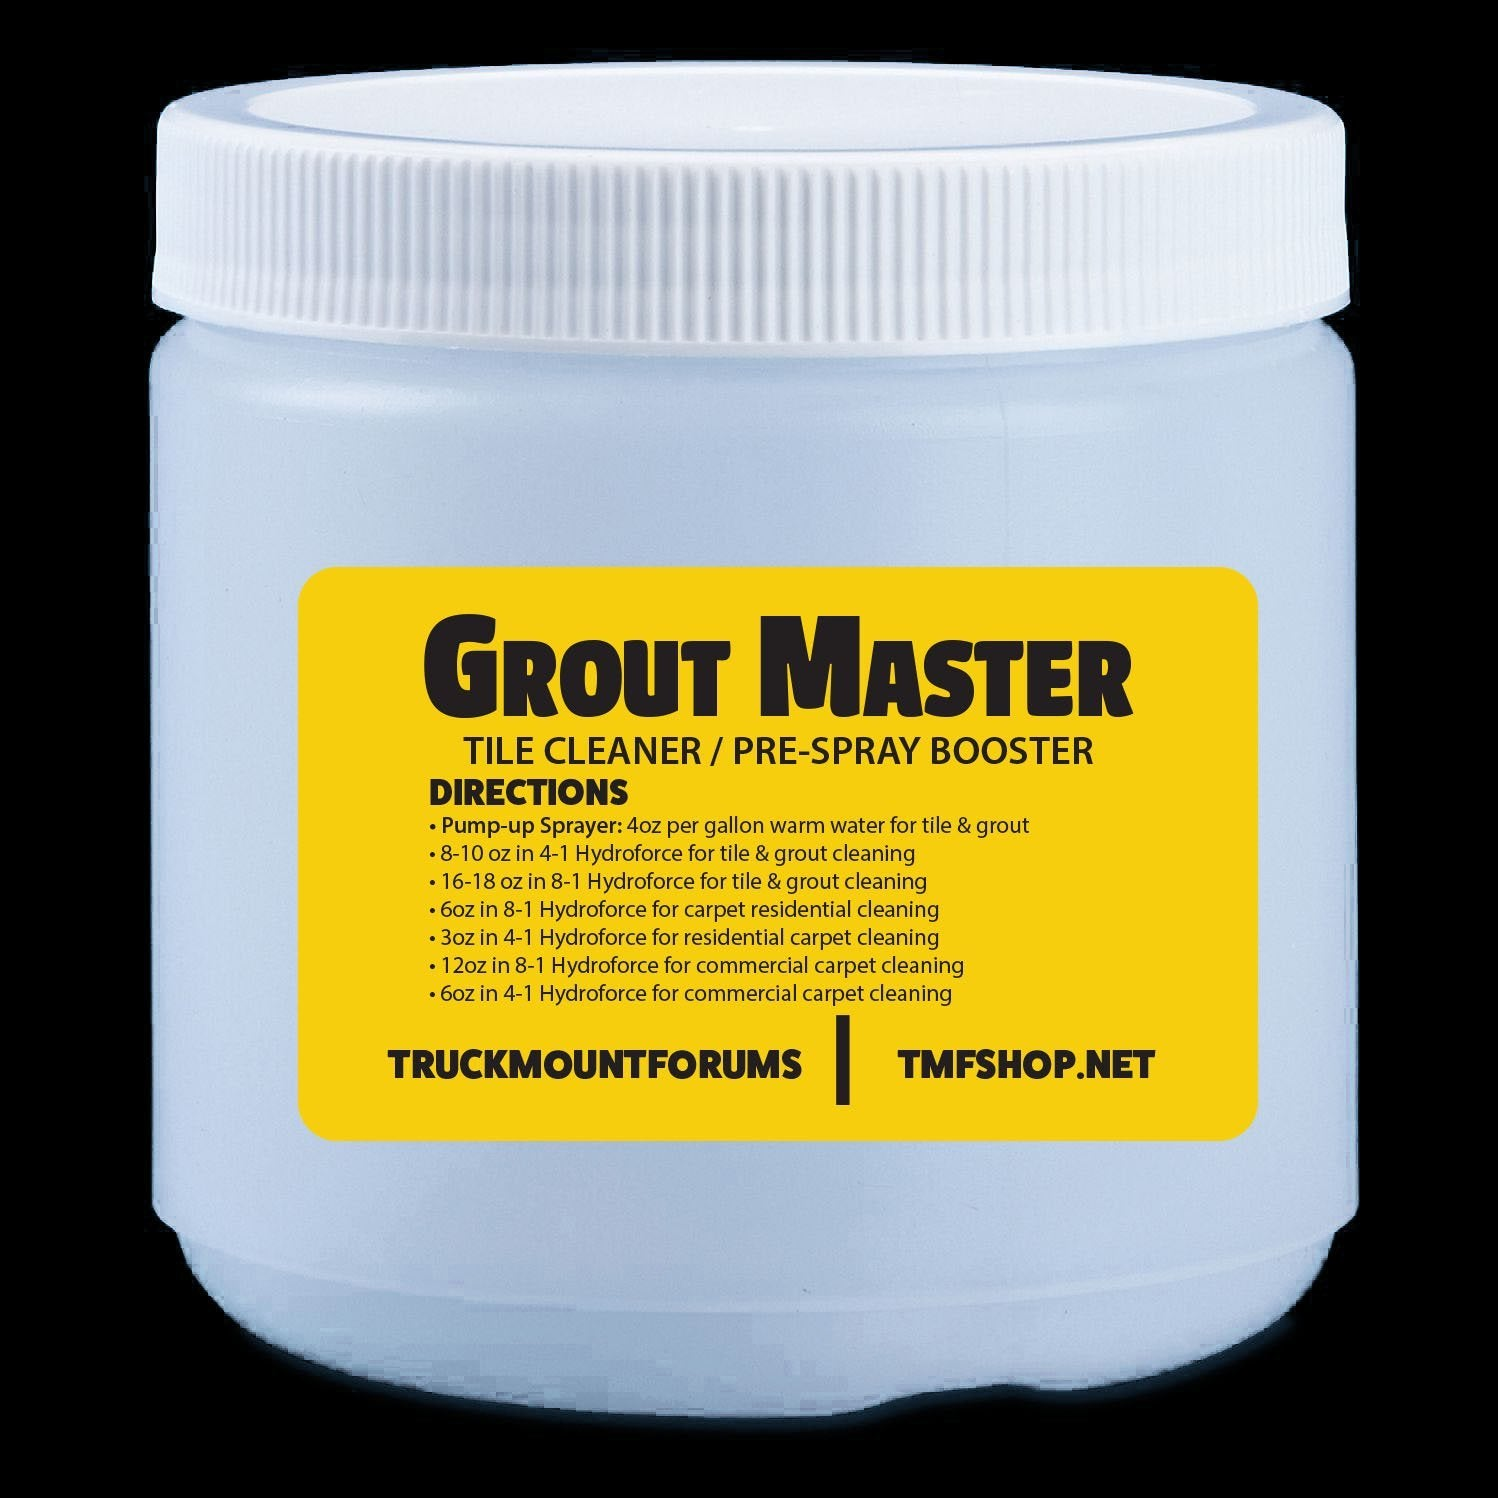 GroutMaster Sample (16oz) - TMF Store: Carpet Cleaning Equipment & Chemicals from TruckMountForums